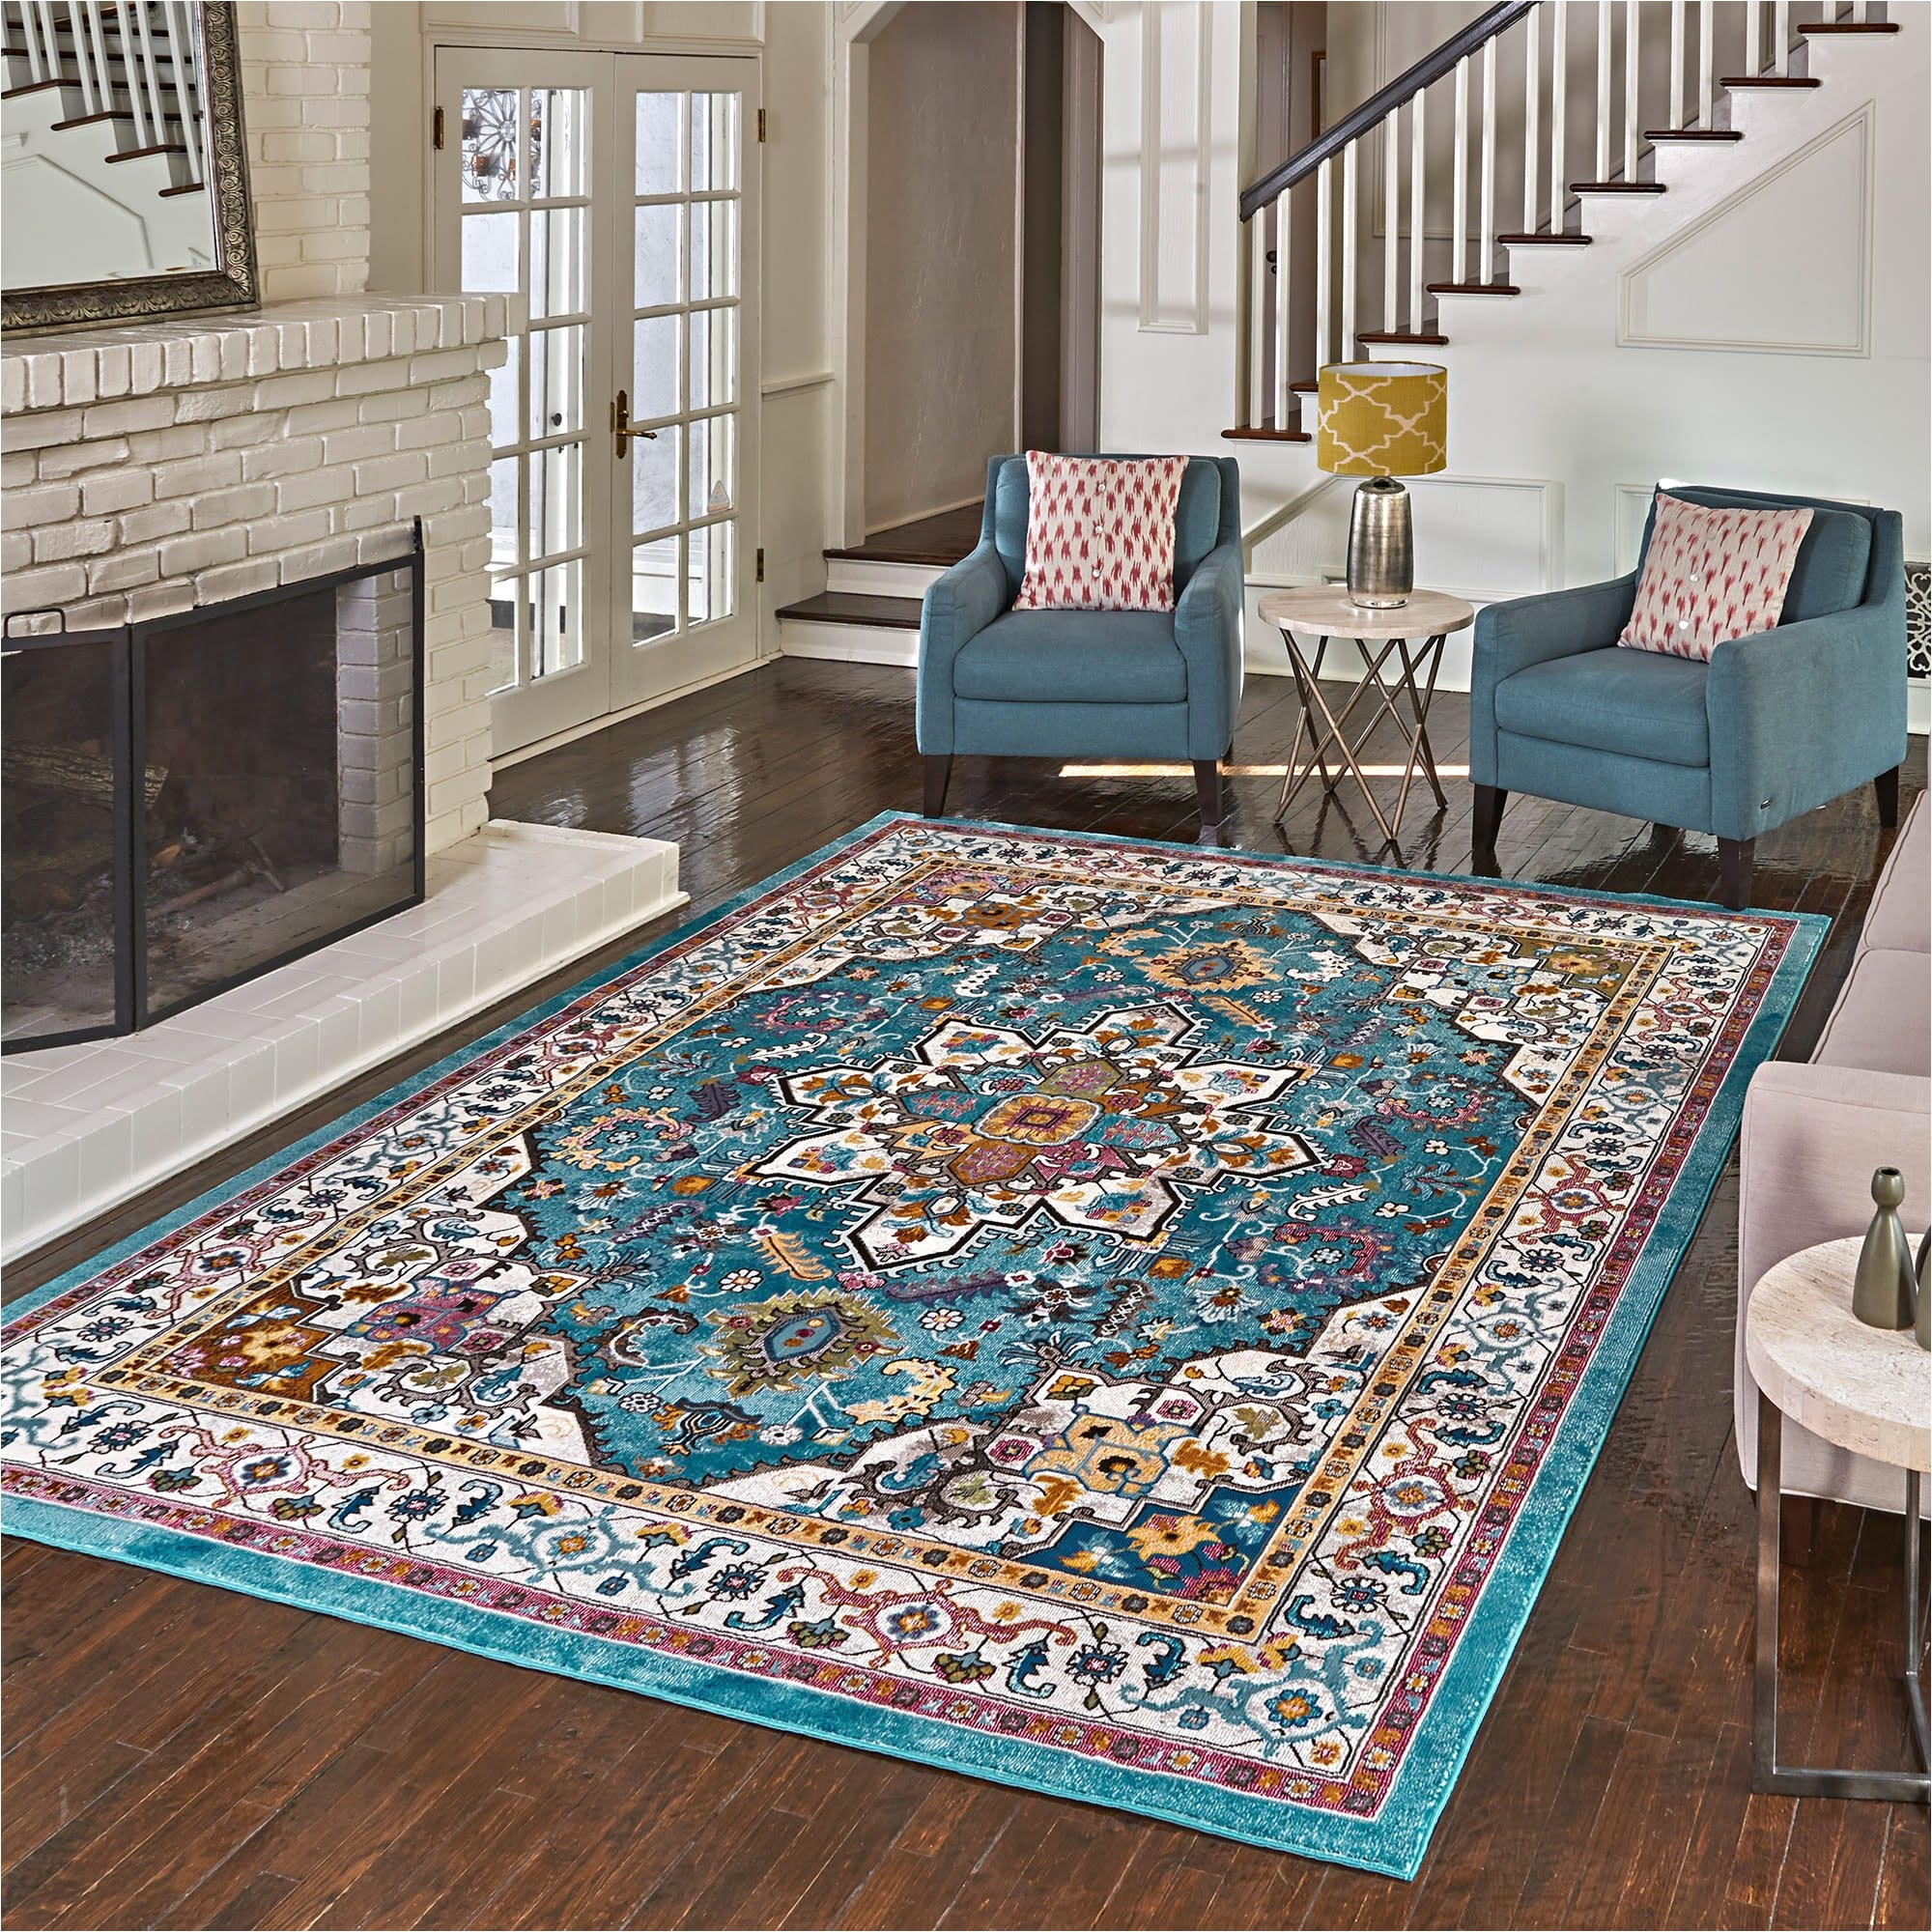 costco offers its members the carmen rug collection area rug in several sizes and styles